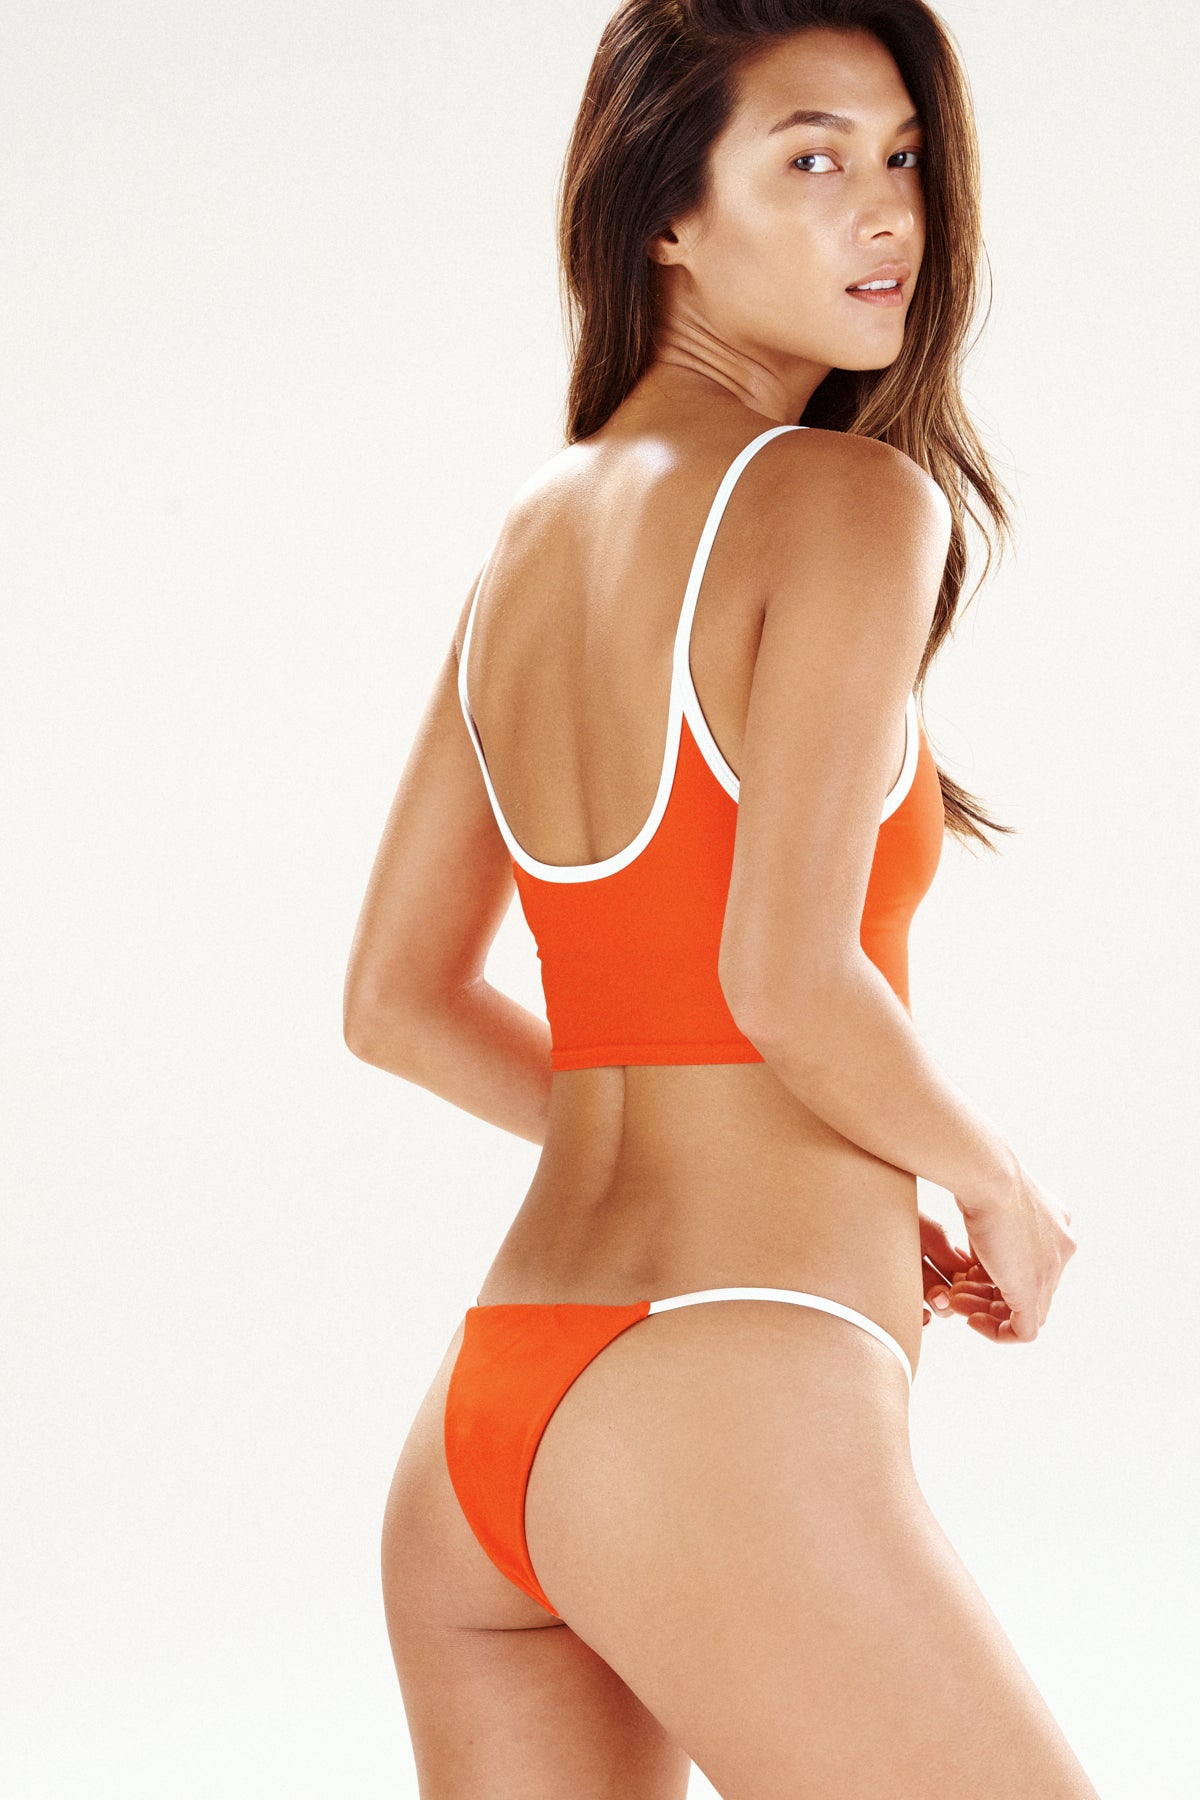 Women's swimwear | orange bikini, the Cayman, by Ookioh